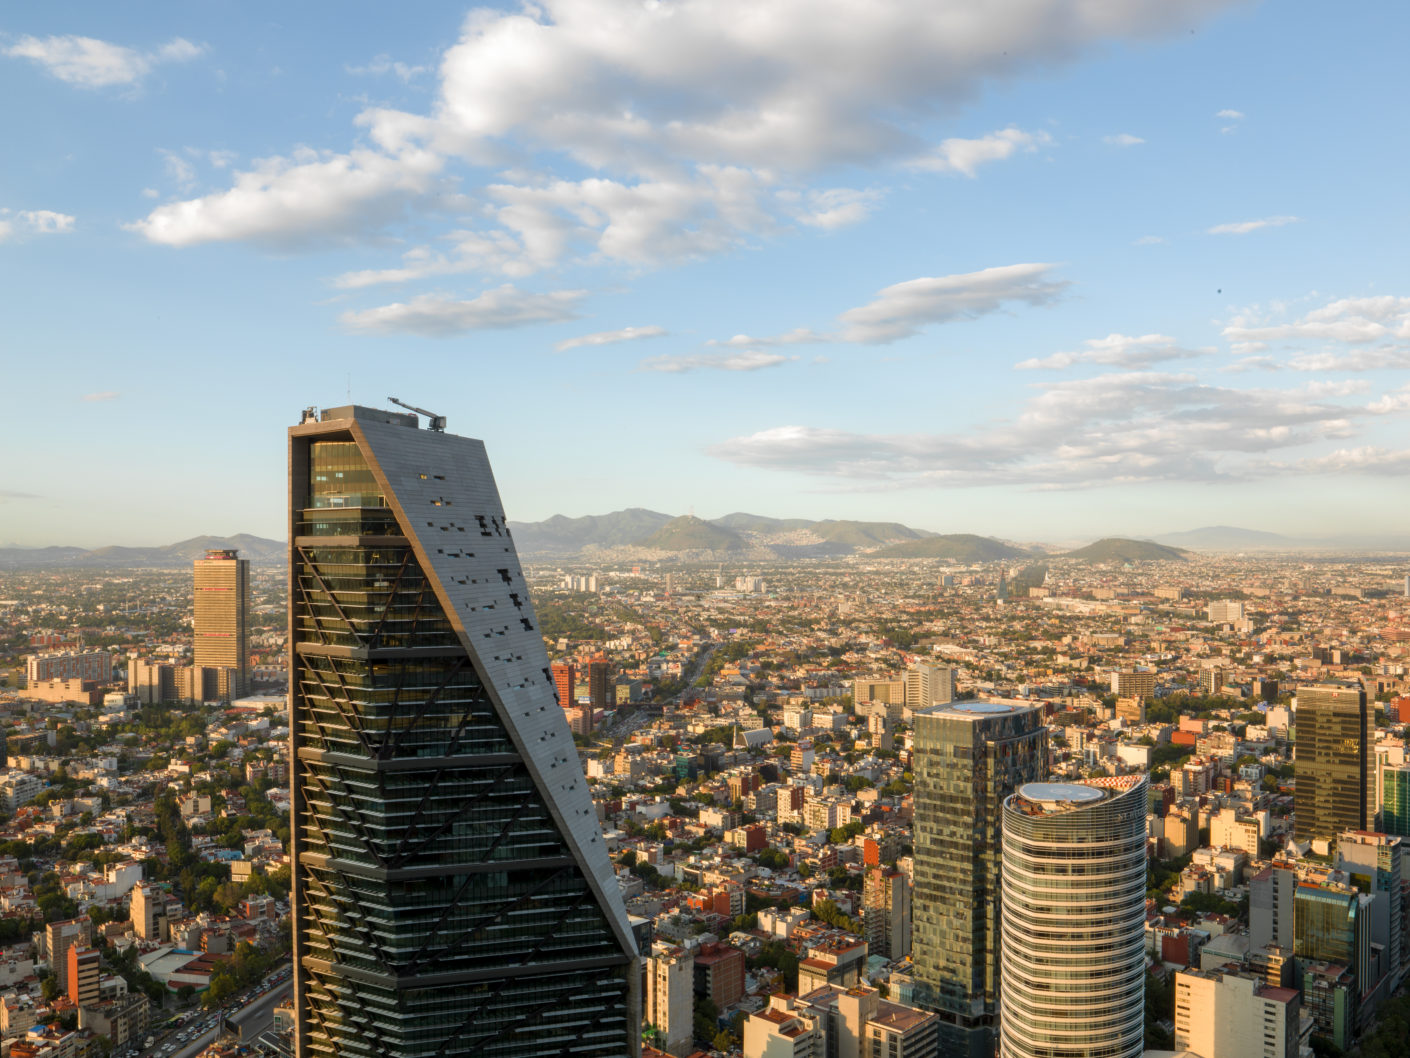 Der Torre Reforma in Mexico City hat den Internationalen Hochhaus Preis 2018 gewonnen.